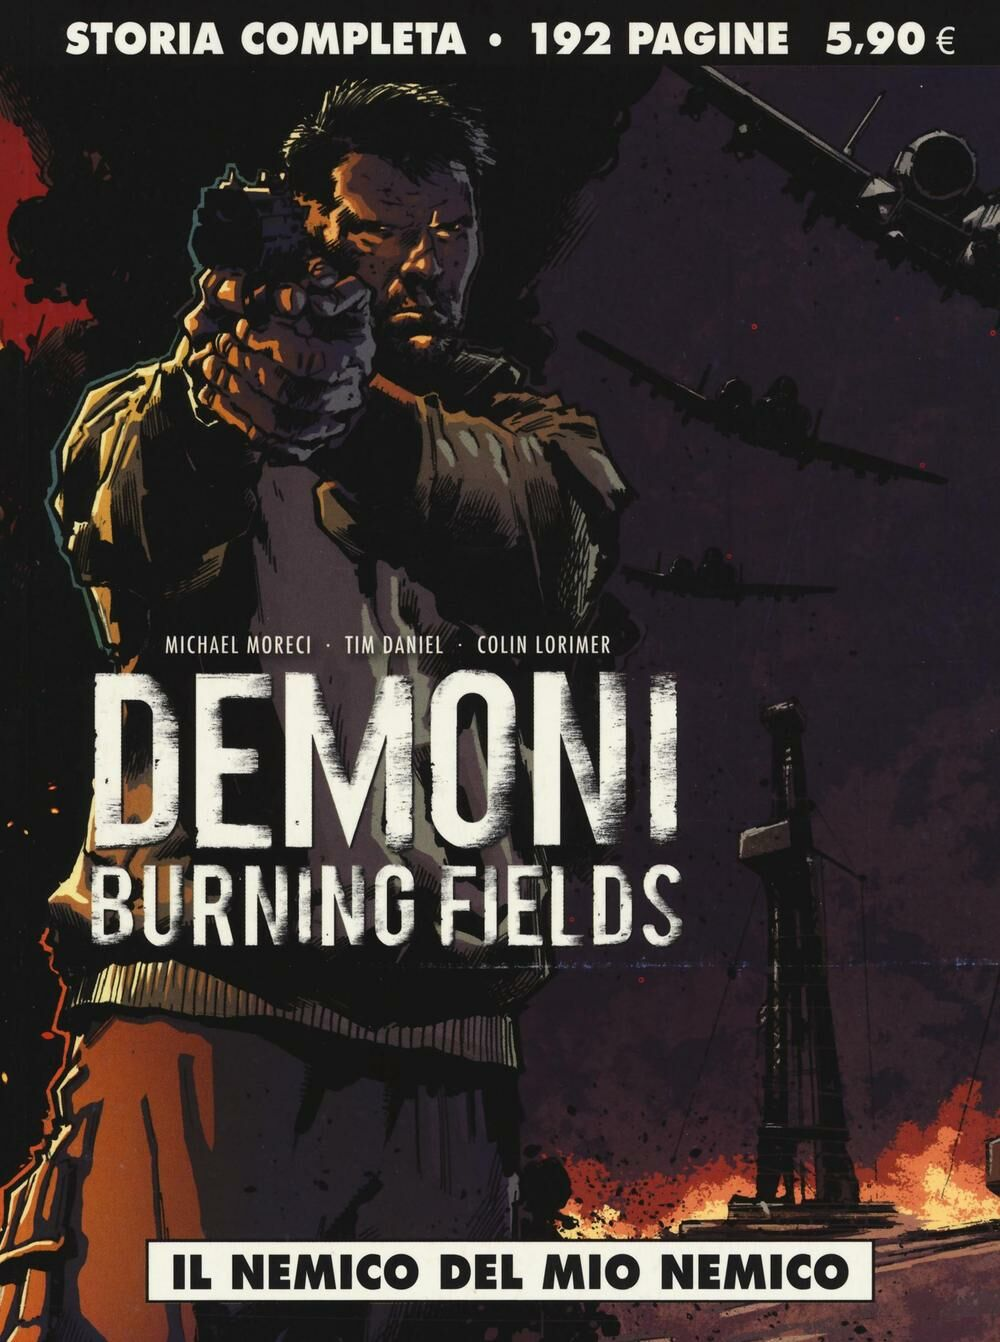 Il nemico del mio nemico. Demoni. Burning fields